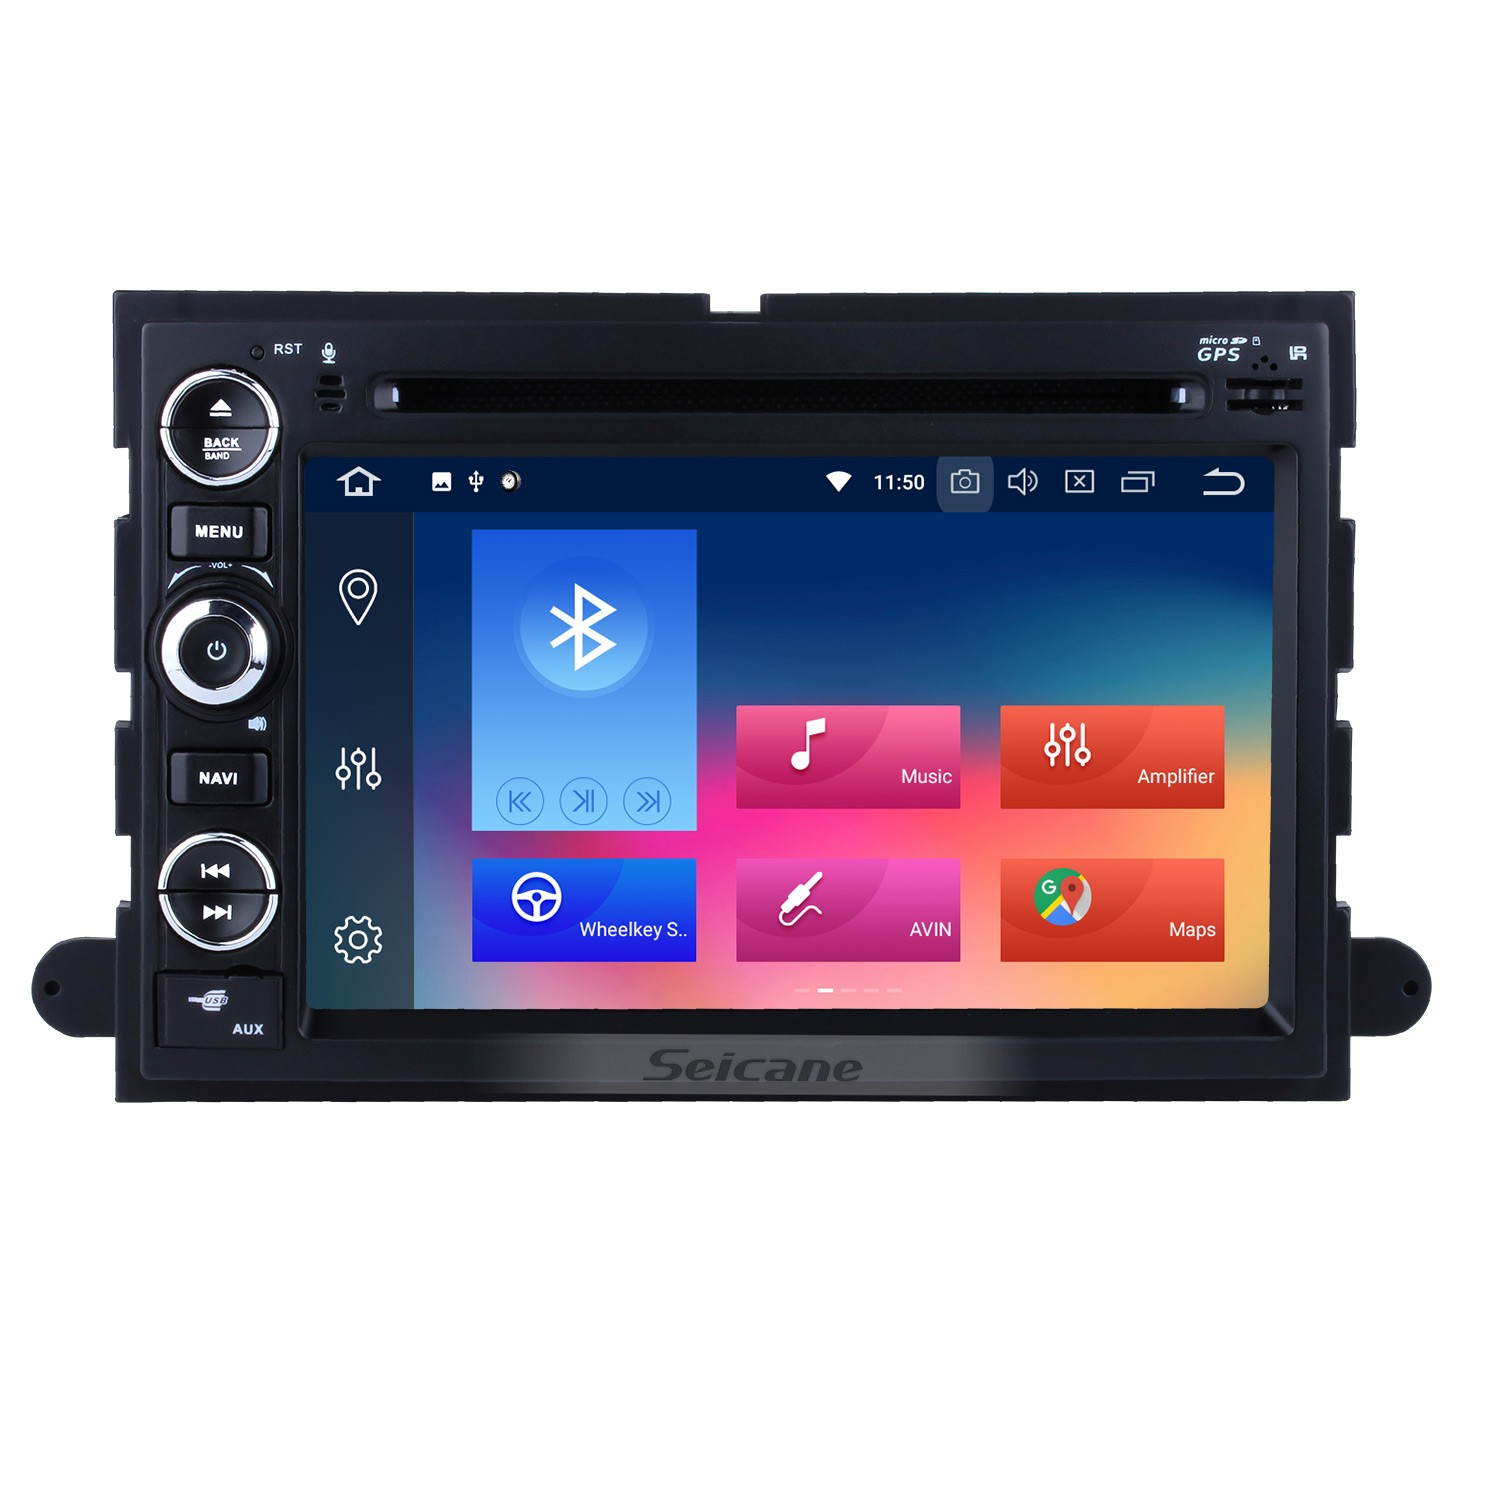 hight resolution of 2013 kia forte left android 4 4 4 radio dvd player gps navigation system mirror link